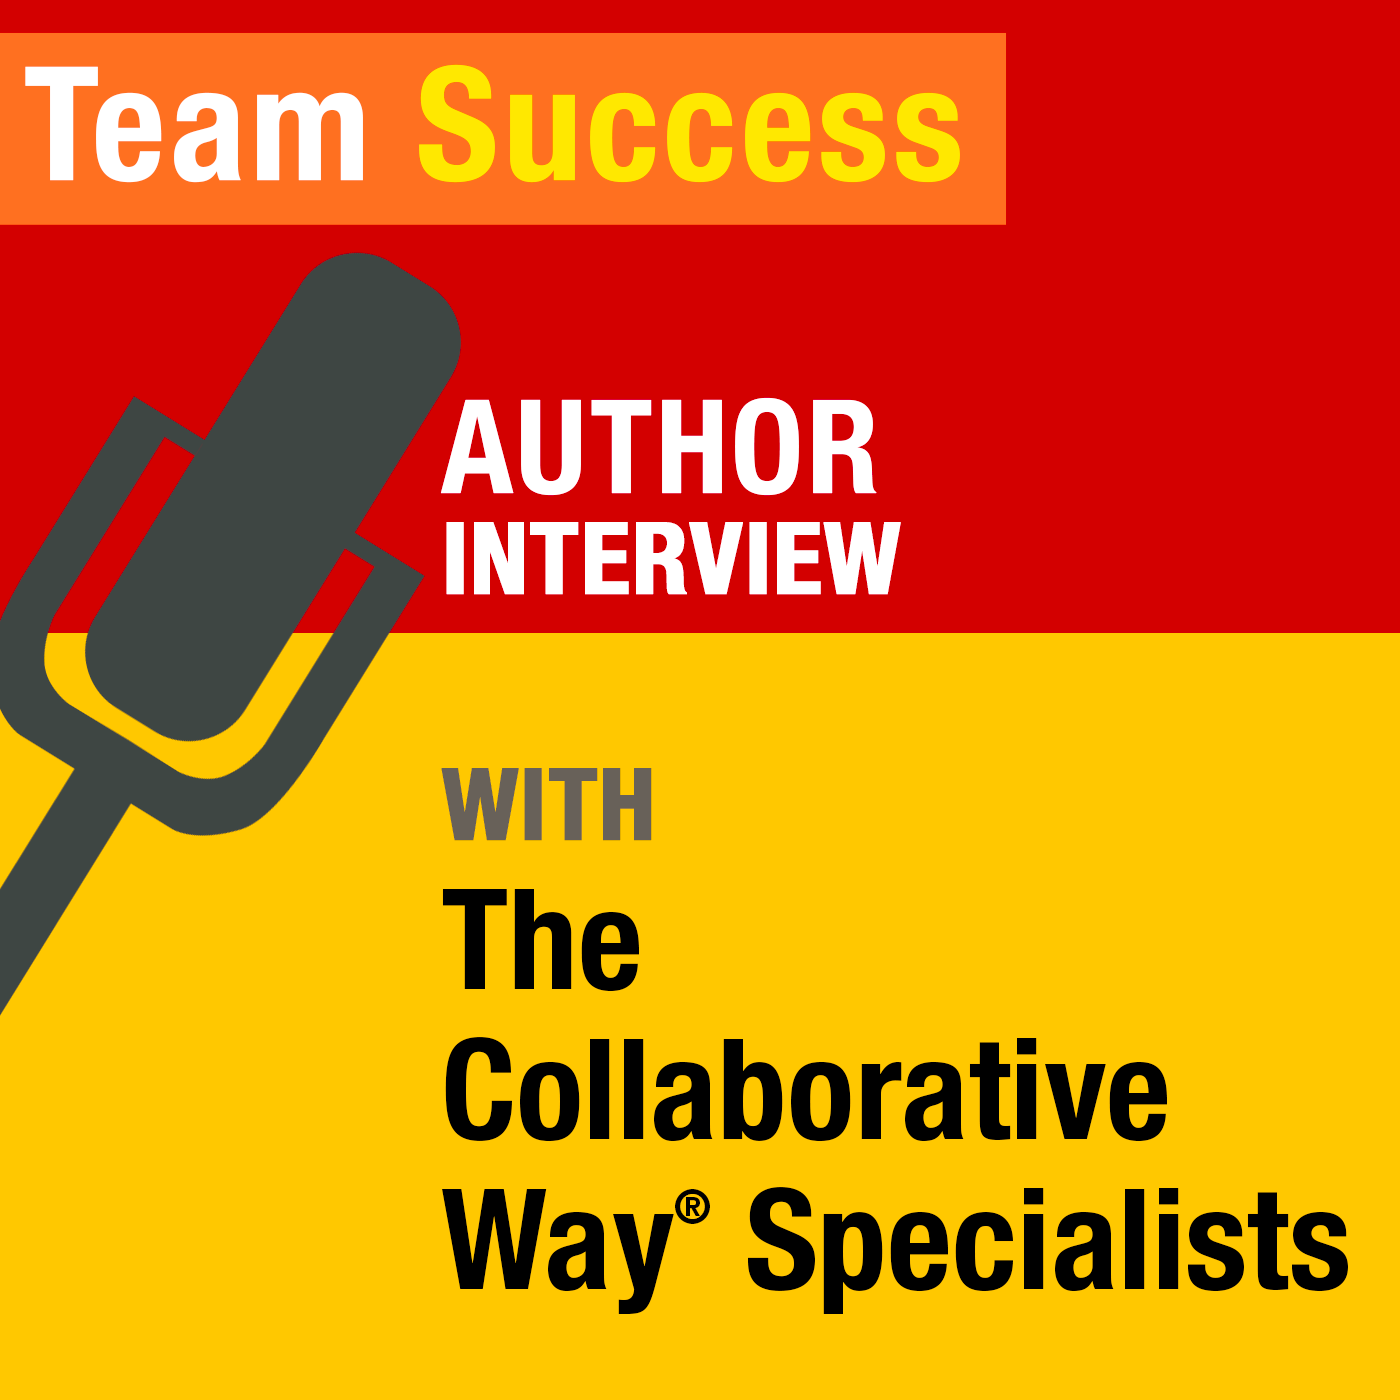 Author Interview With The Collaborative Way Specialists